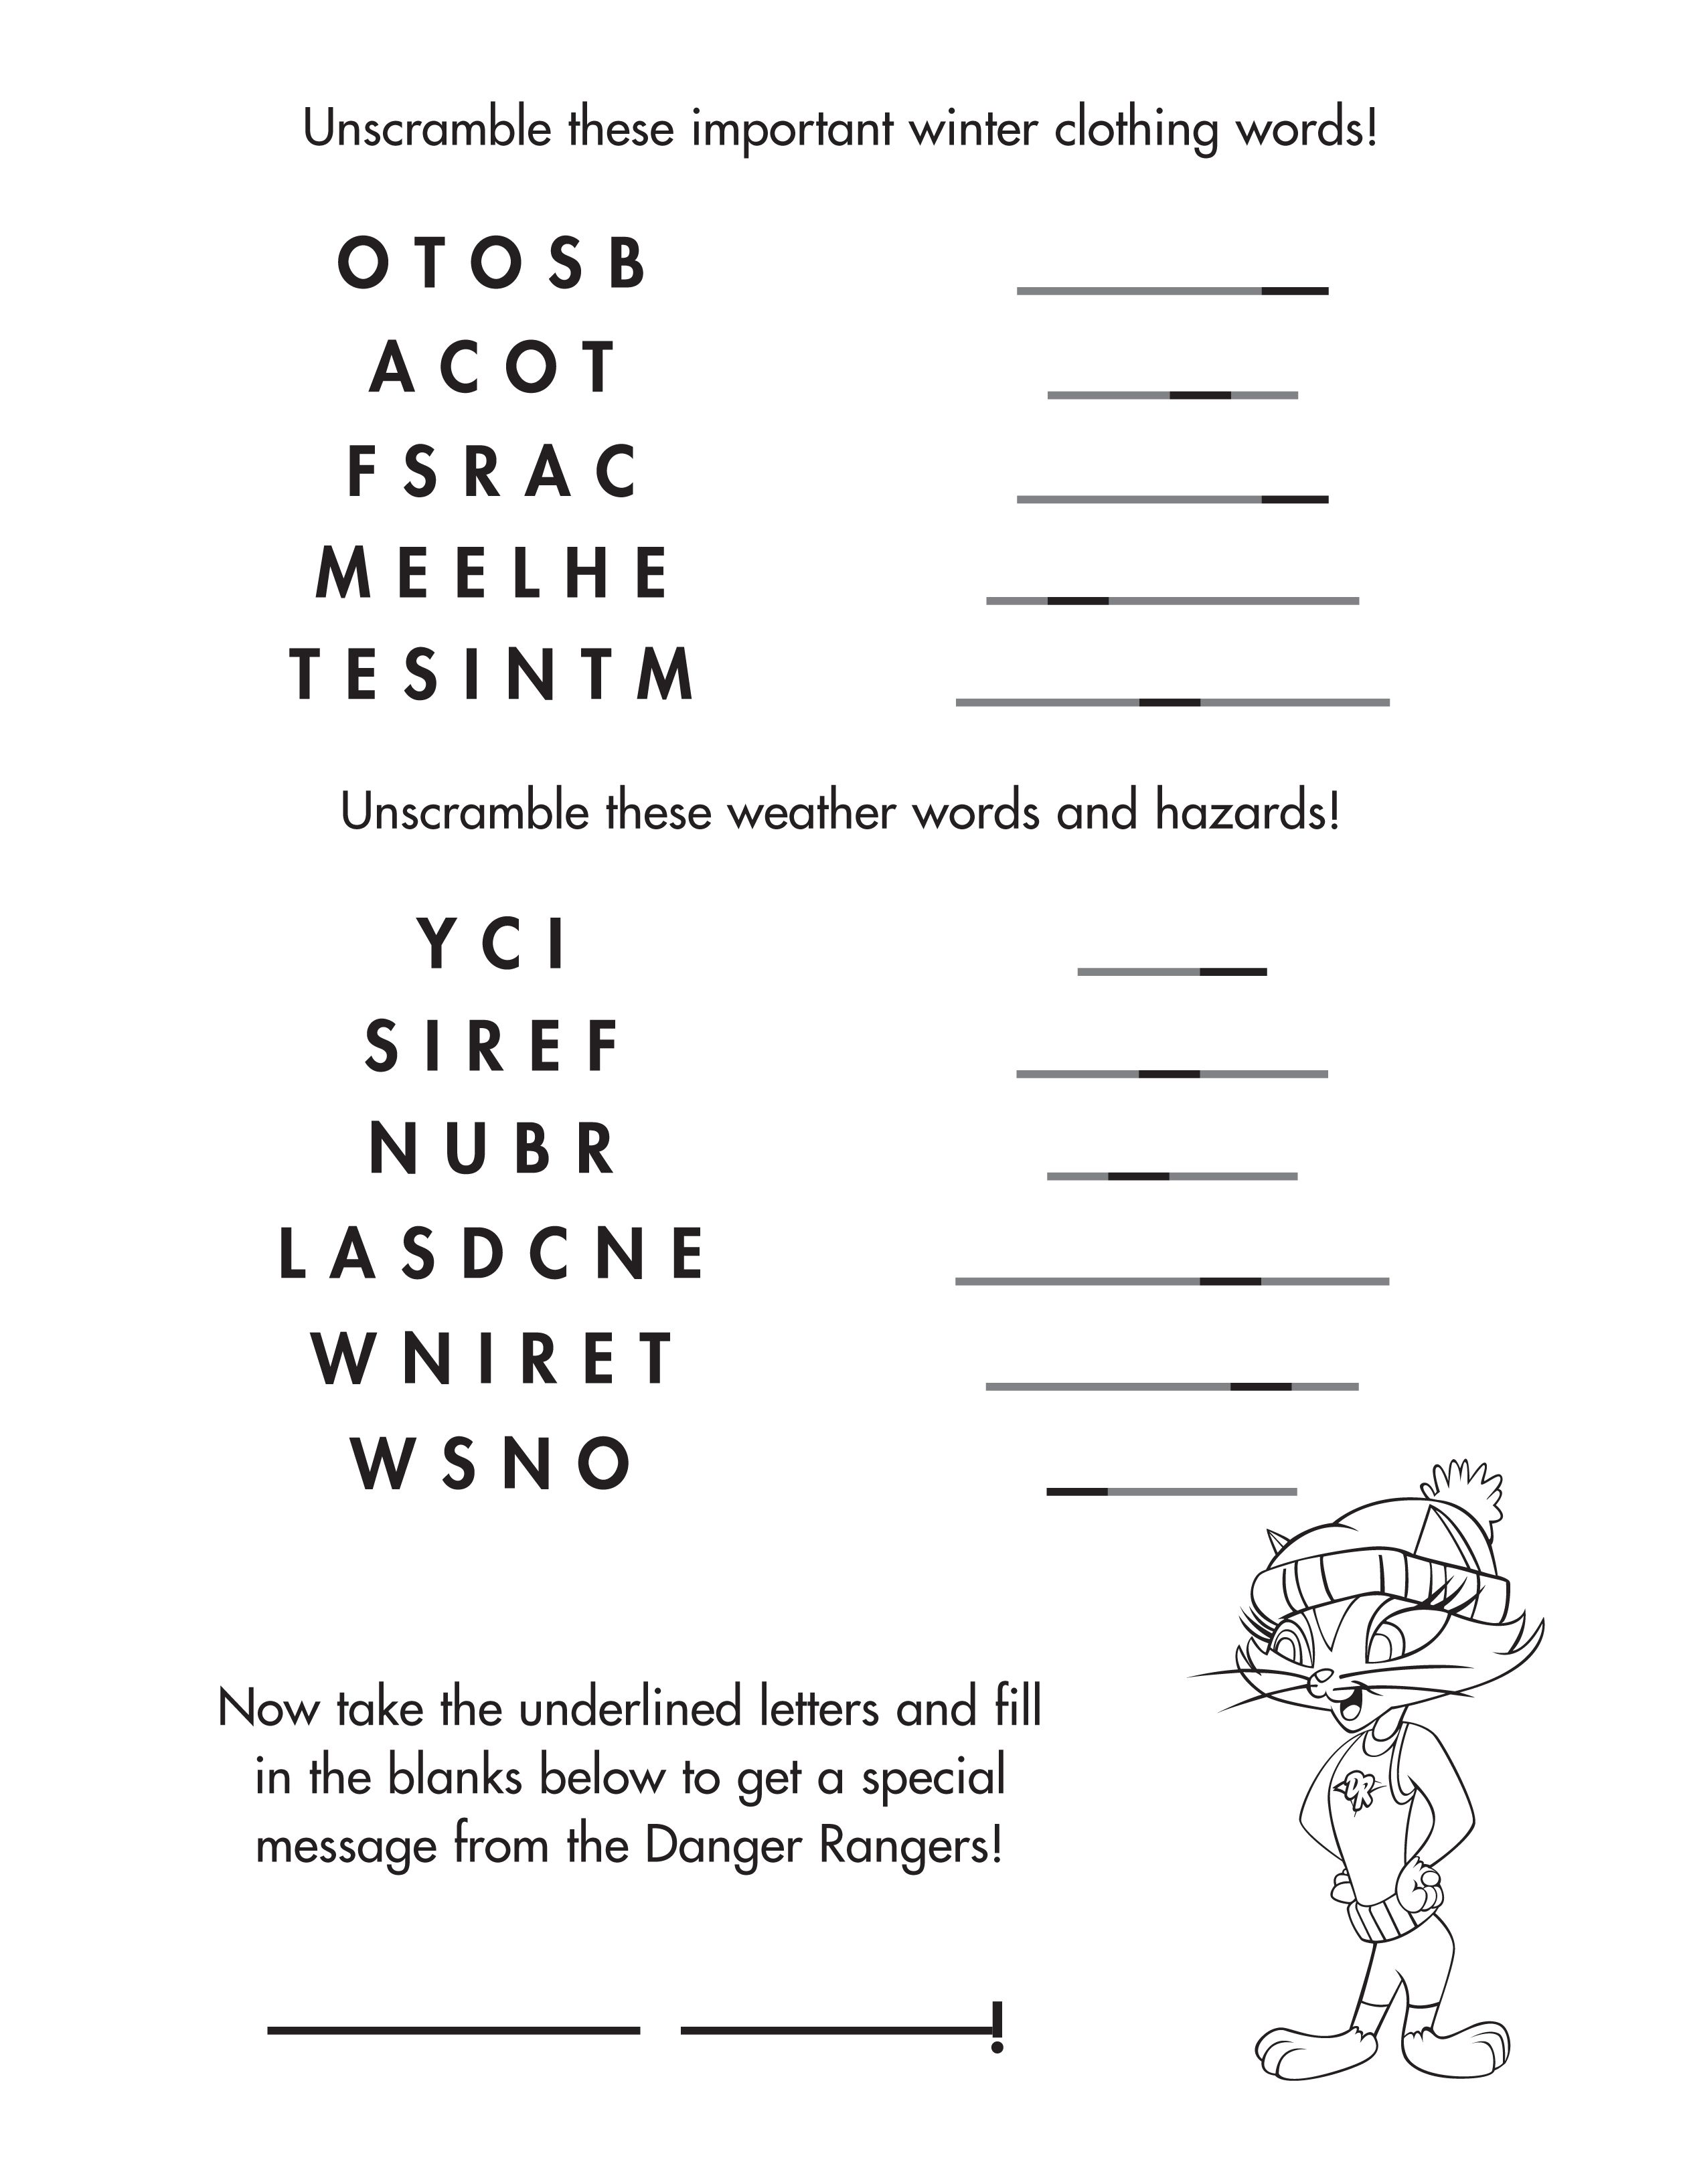 Help Kitty Unscramble These Winter Words Childsafety Freeprintable